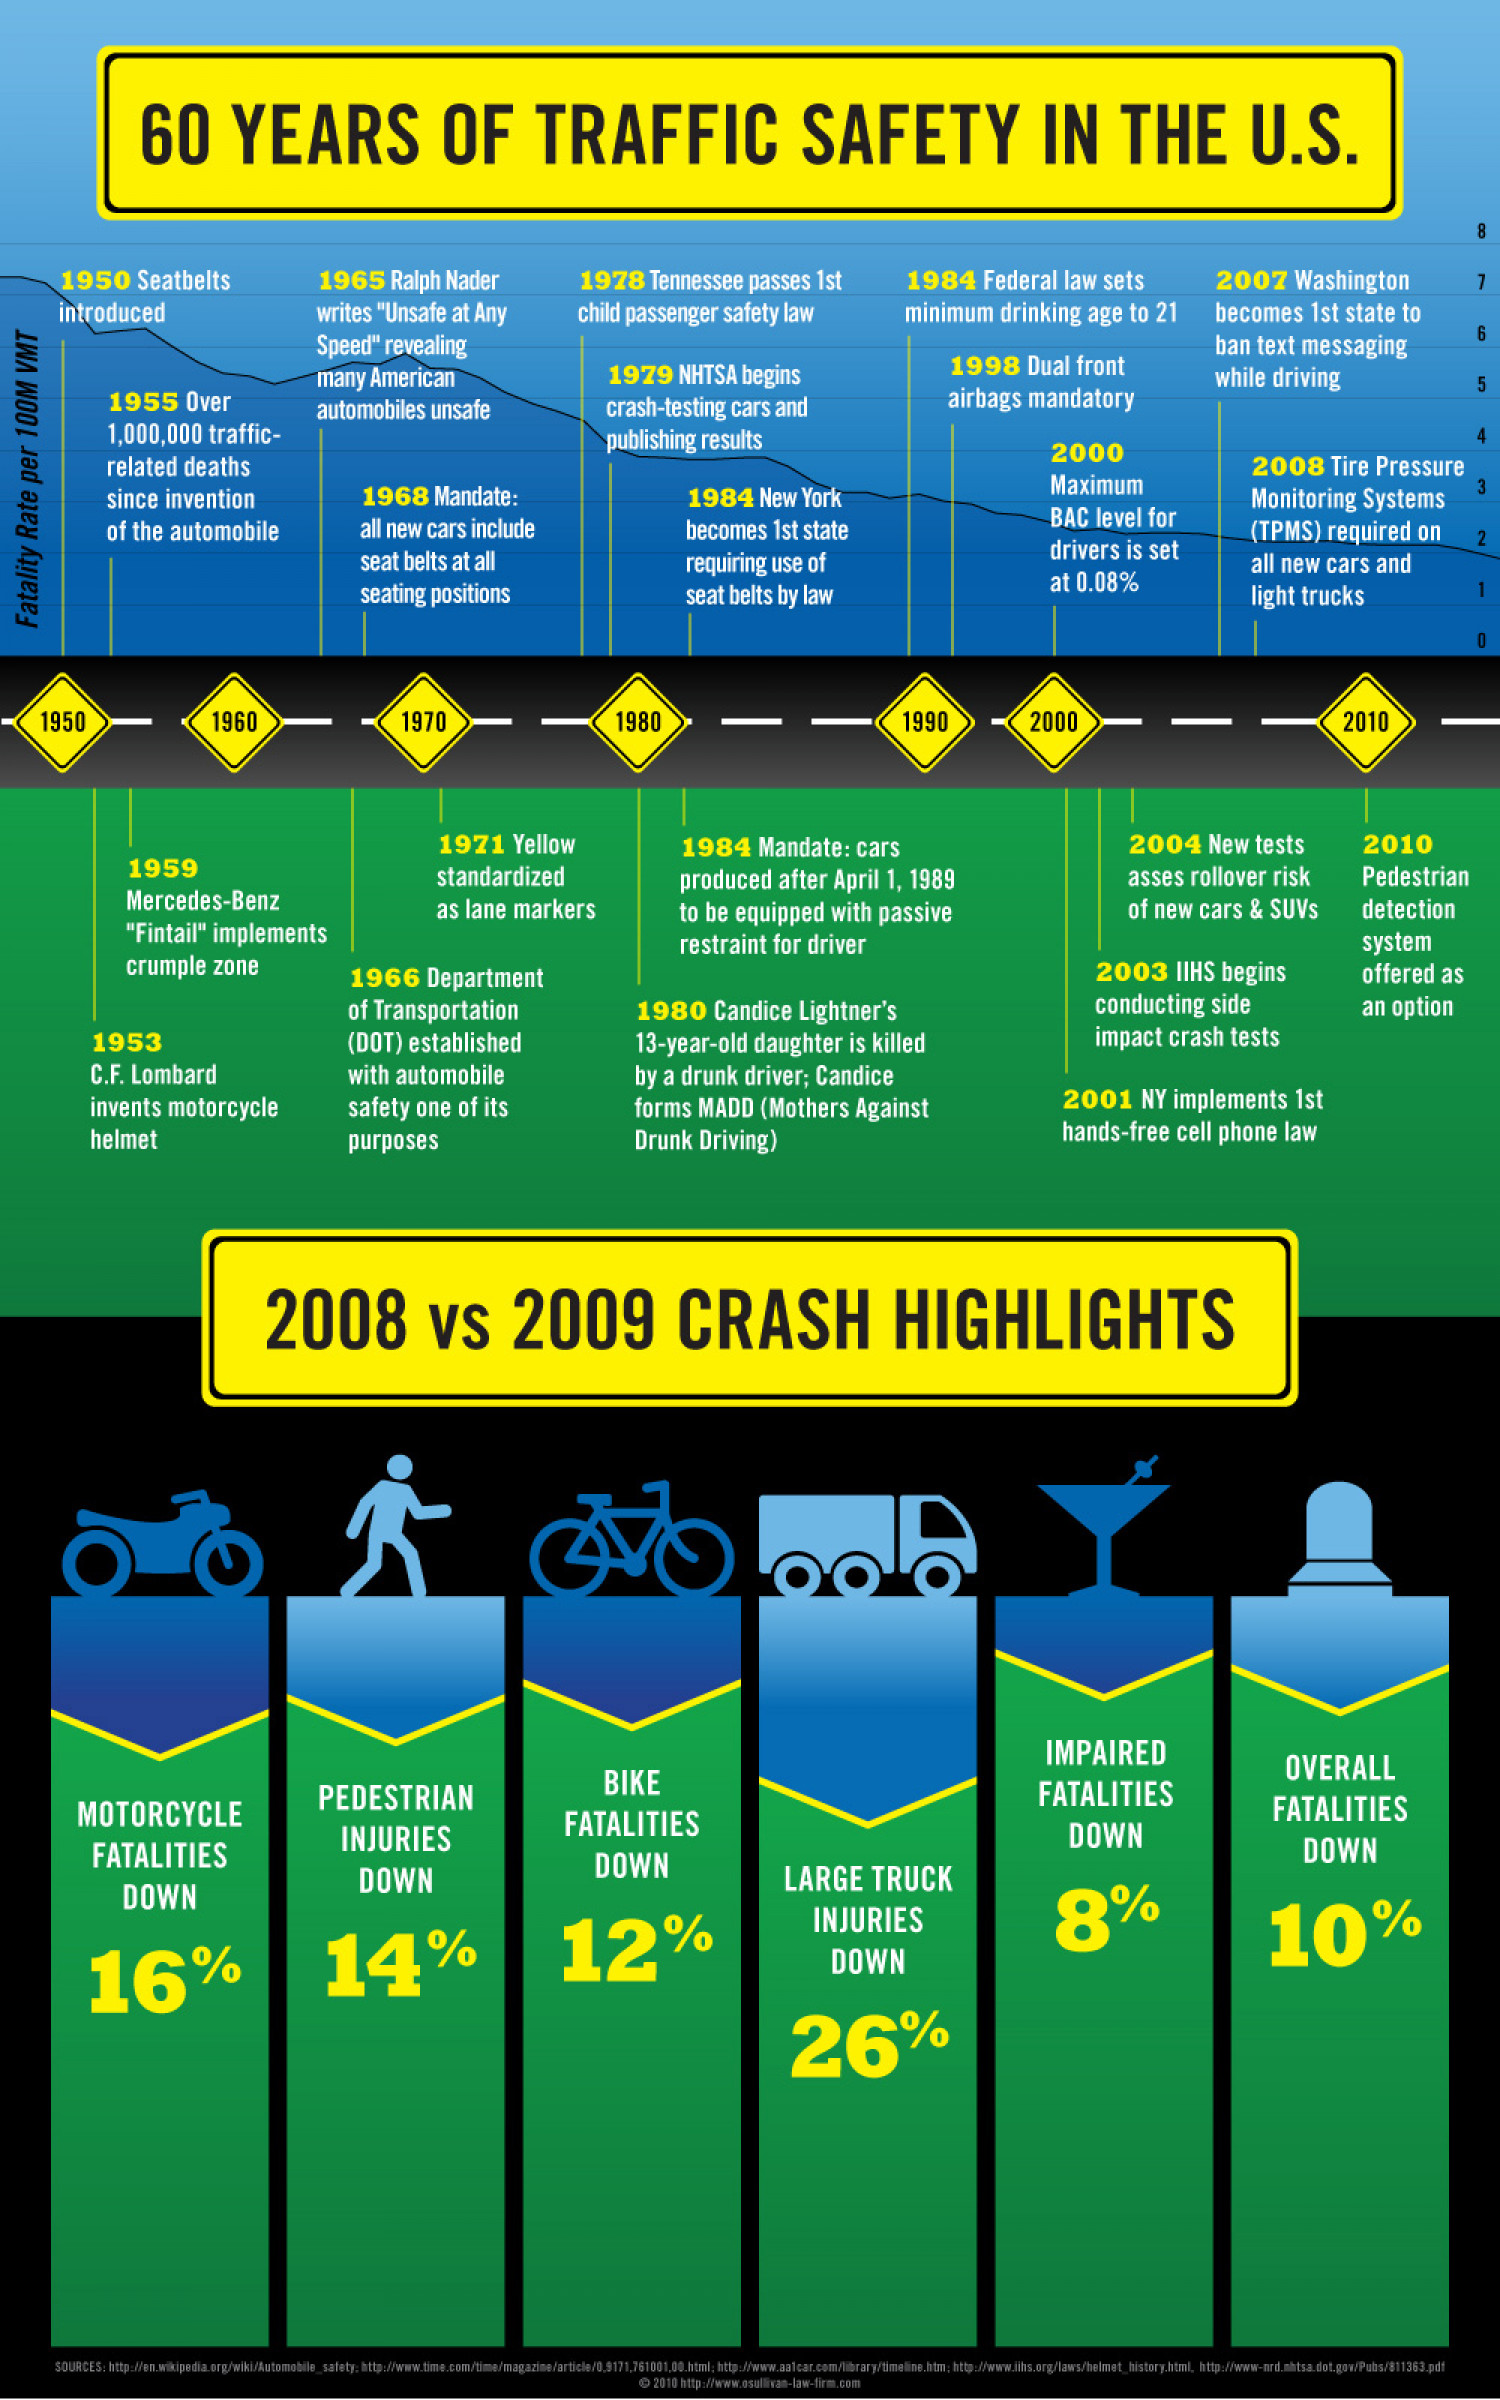 60 Years of Traffic Safety in the U.S. Infographic